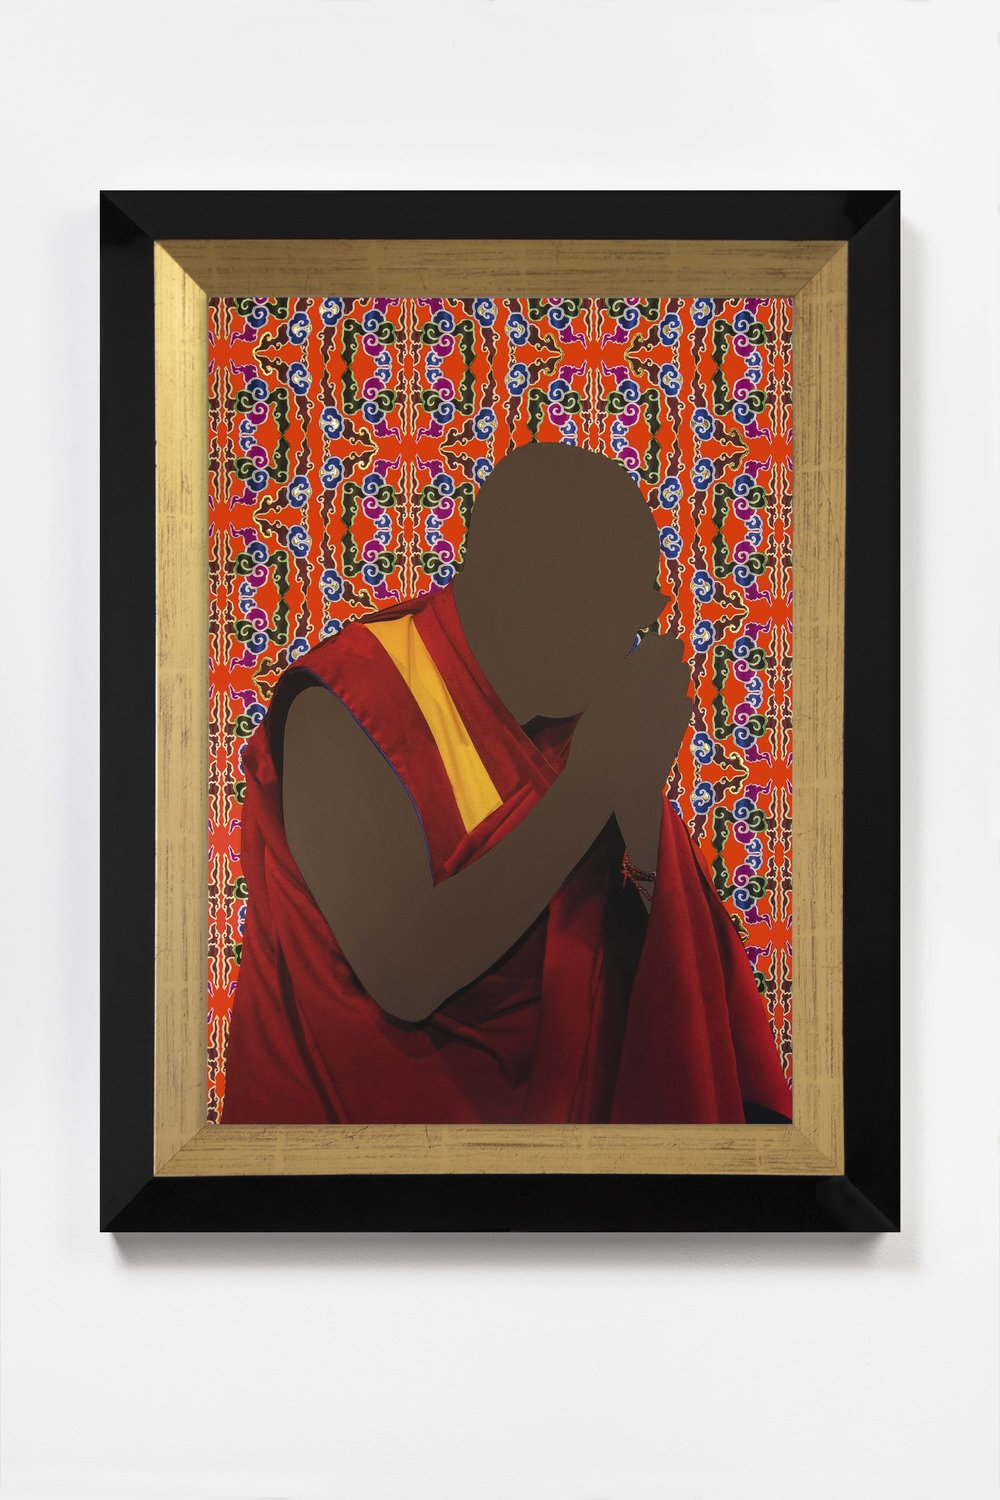 Portraits Framed Final_Dalai Lama.jpg